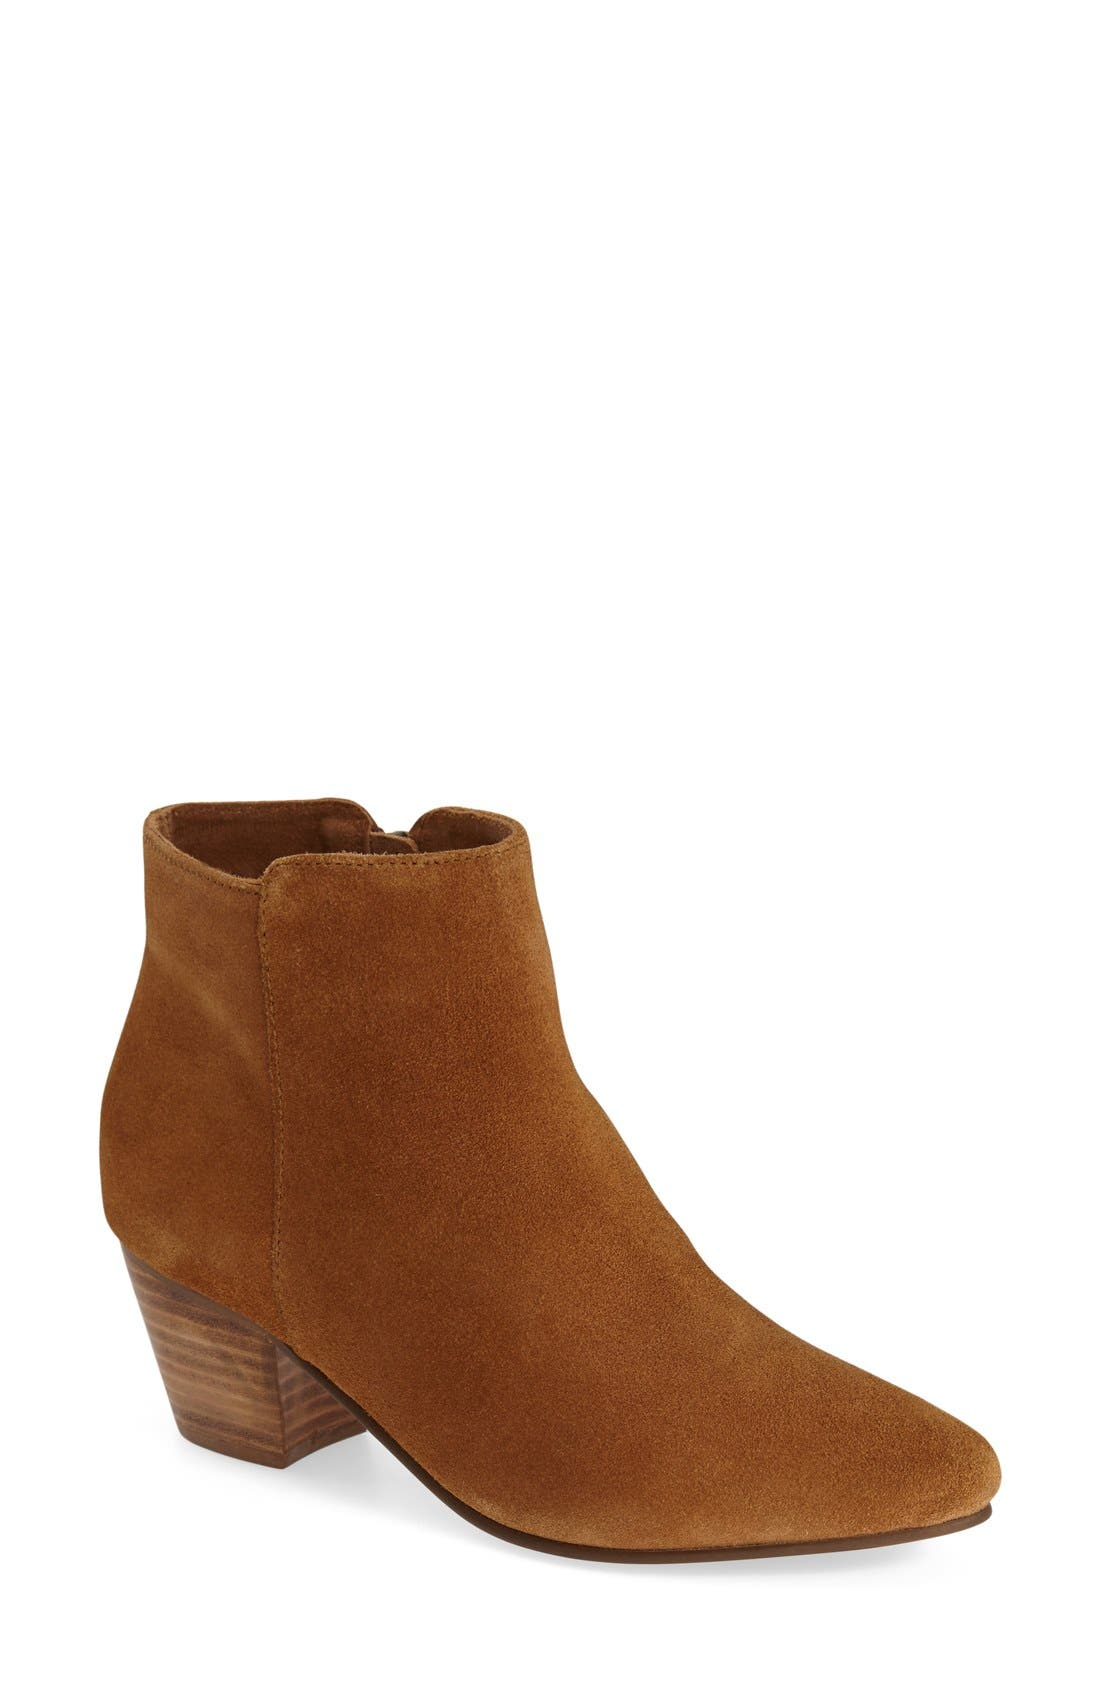 Main Image - Coconuts by Matisse 'Margarite' Asymmetrical Bootie (Women)